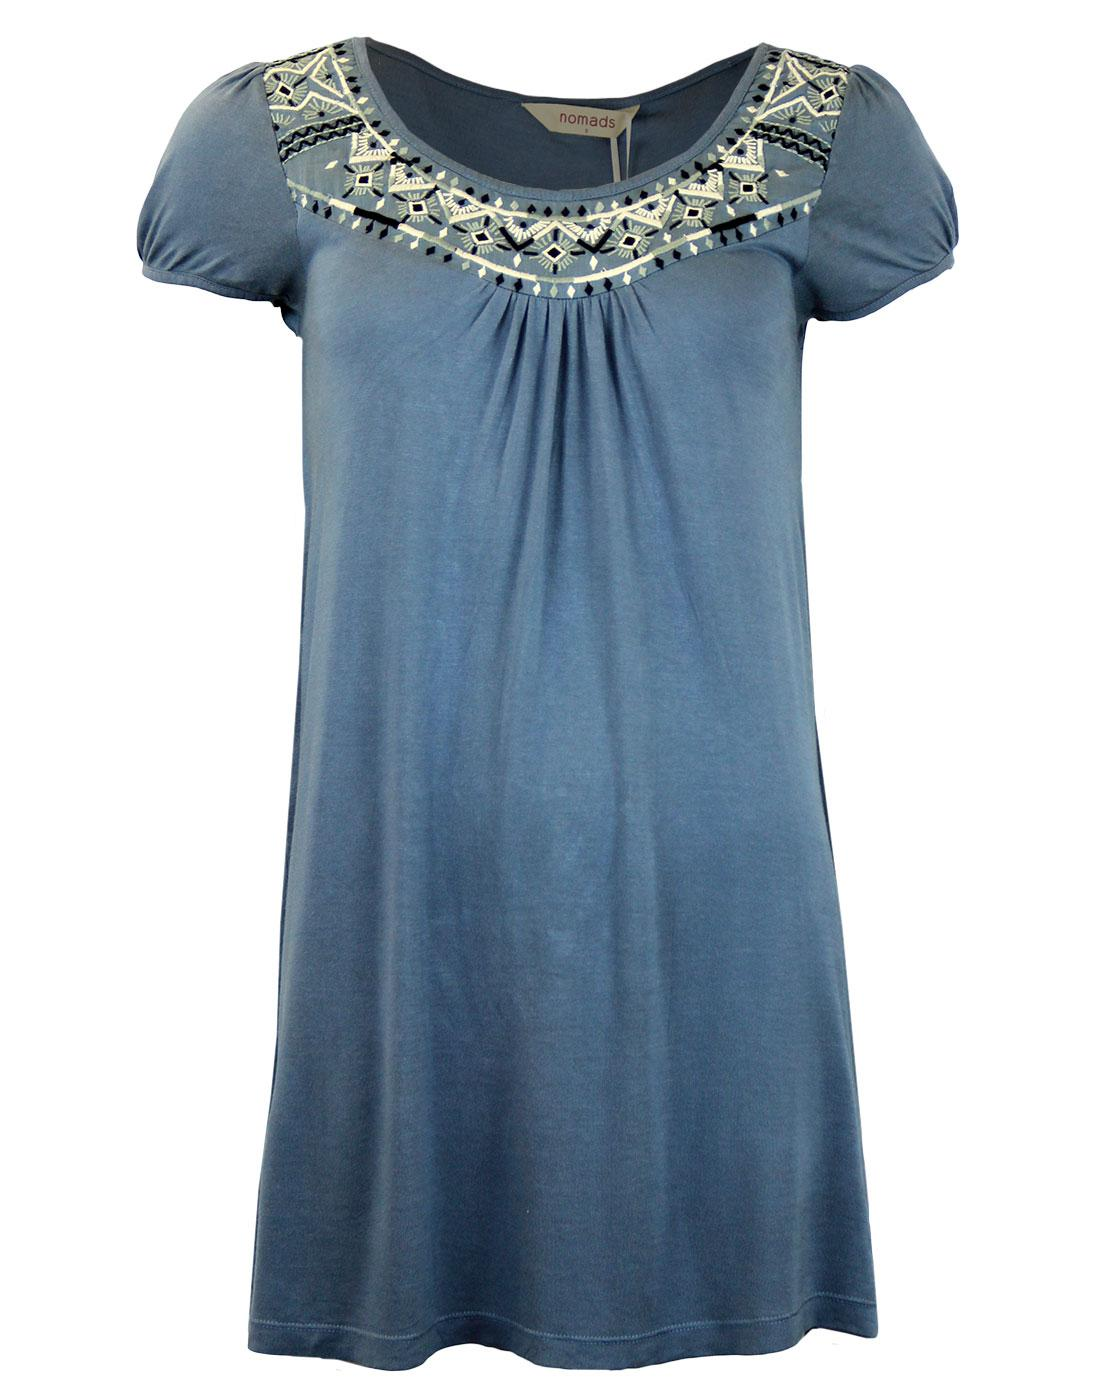 NOMADS Retro 70s Embroidered Neckline Tunic Top